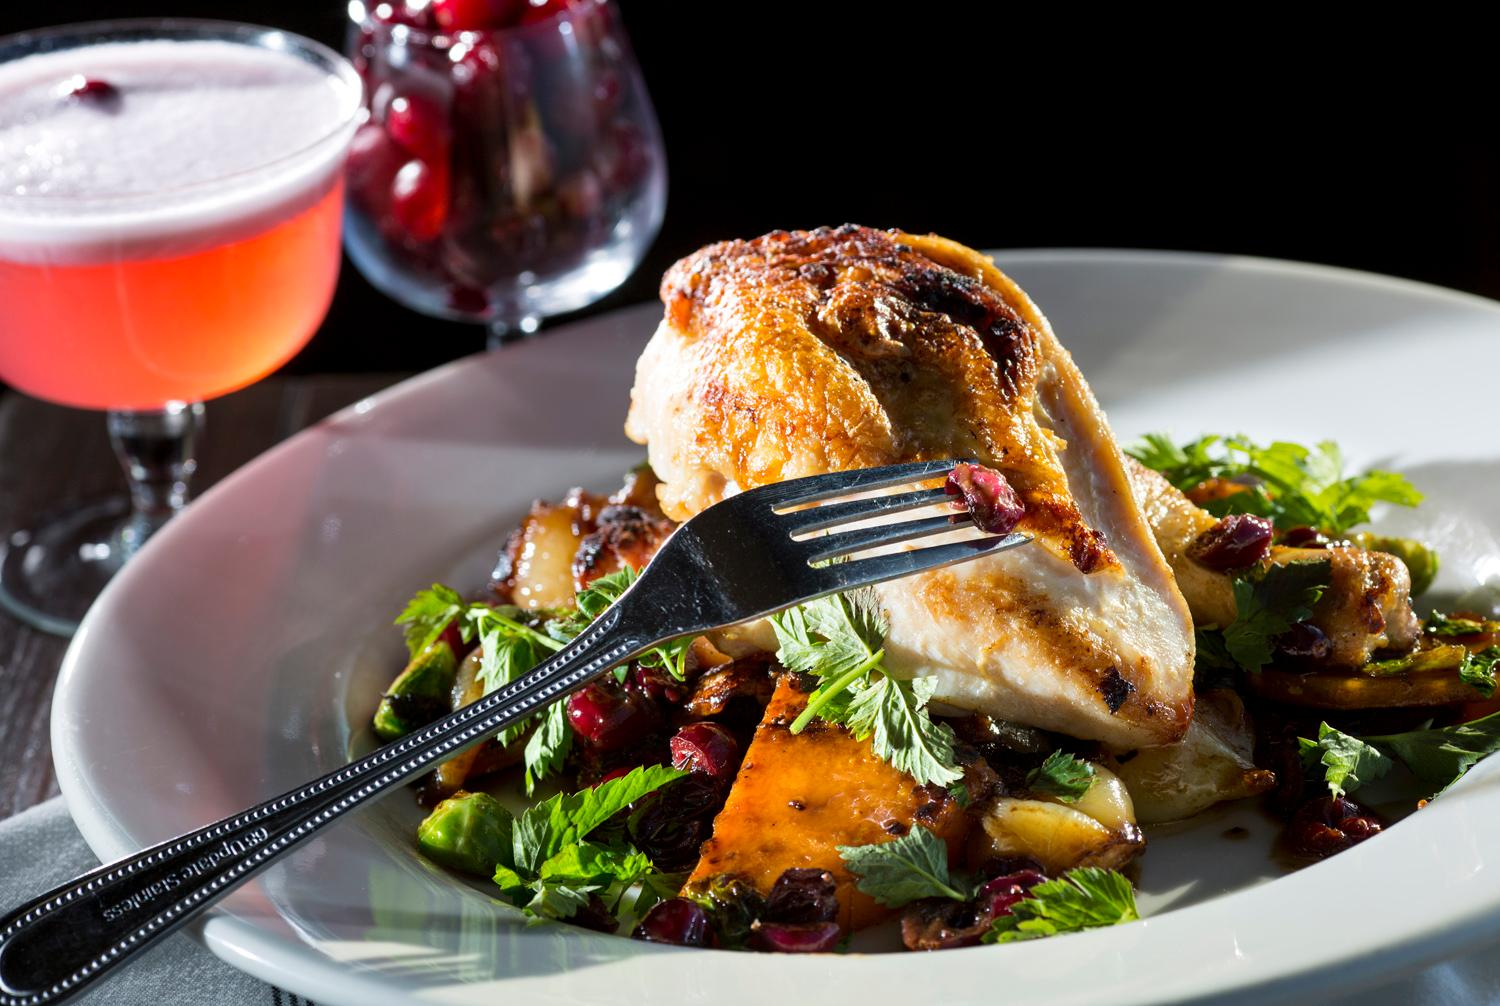 The half chicken, with butternut squash agrodolce, cranberry jus, brussels sprouts, cipollini onions, and sage, at Pickled Fish, located at 409 Sid Snyder Dr, Long Beach, WA. (Sy Bean / Seattle Refined)